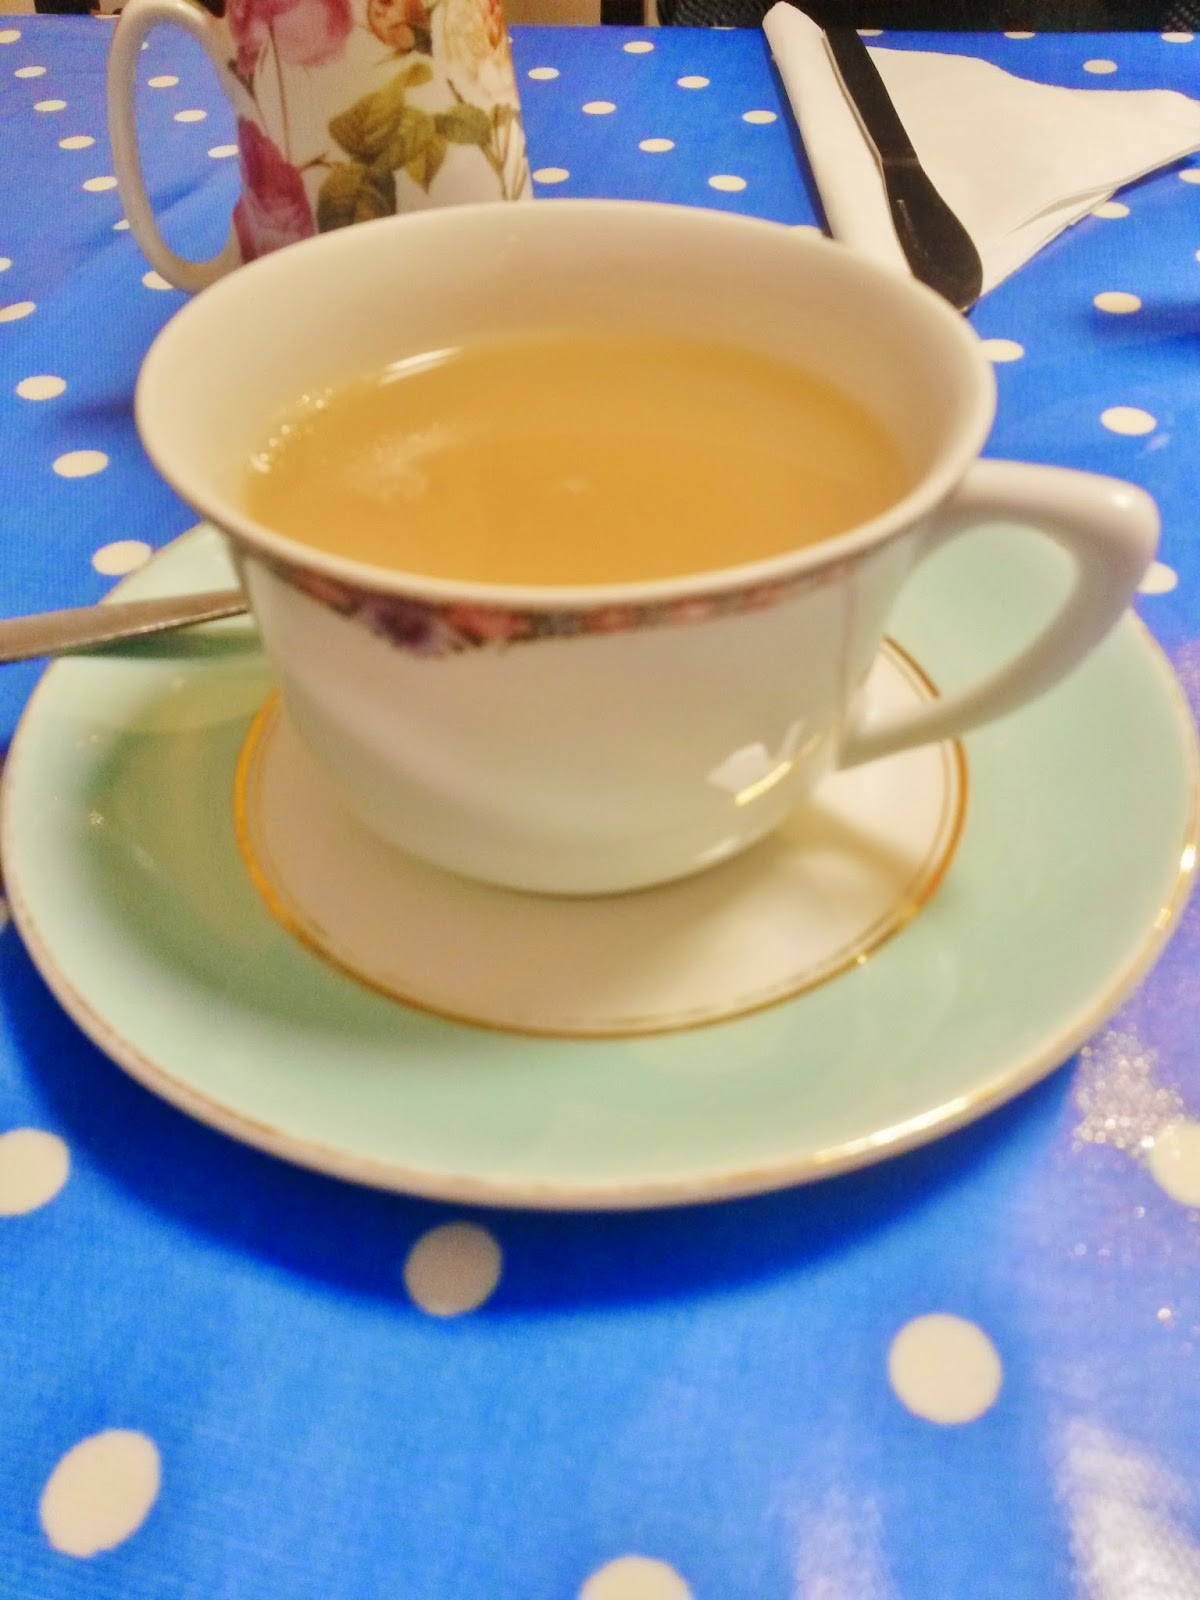 Tea cup and saucer for cream tea at Dolls House at Harrow on the Hill